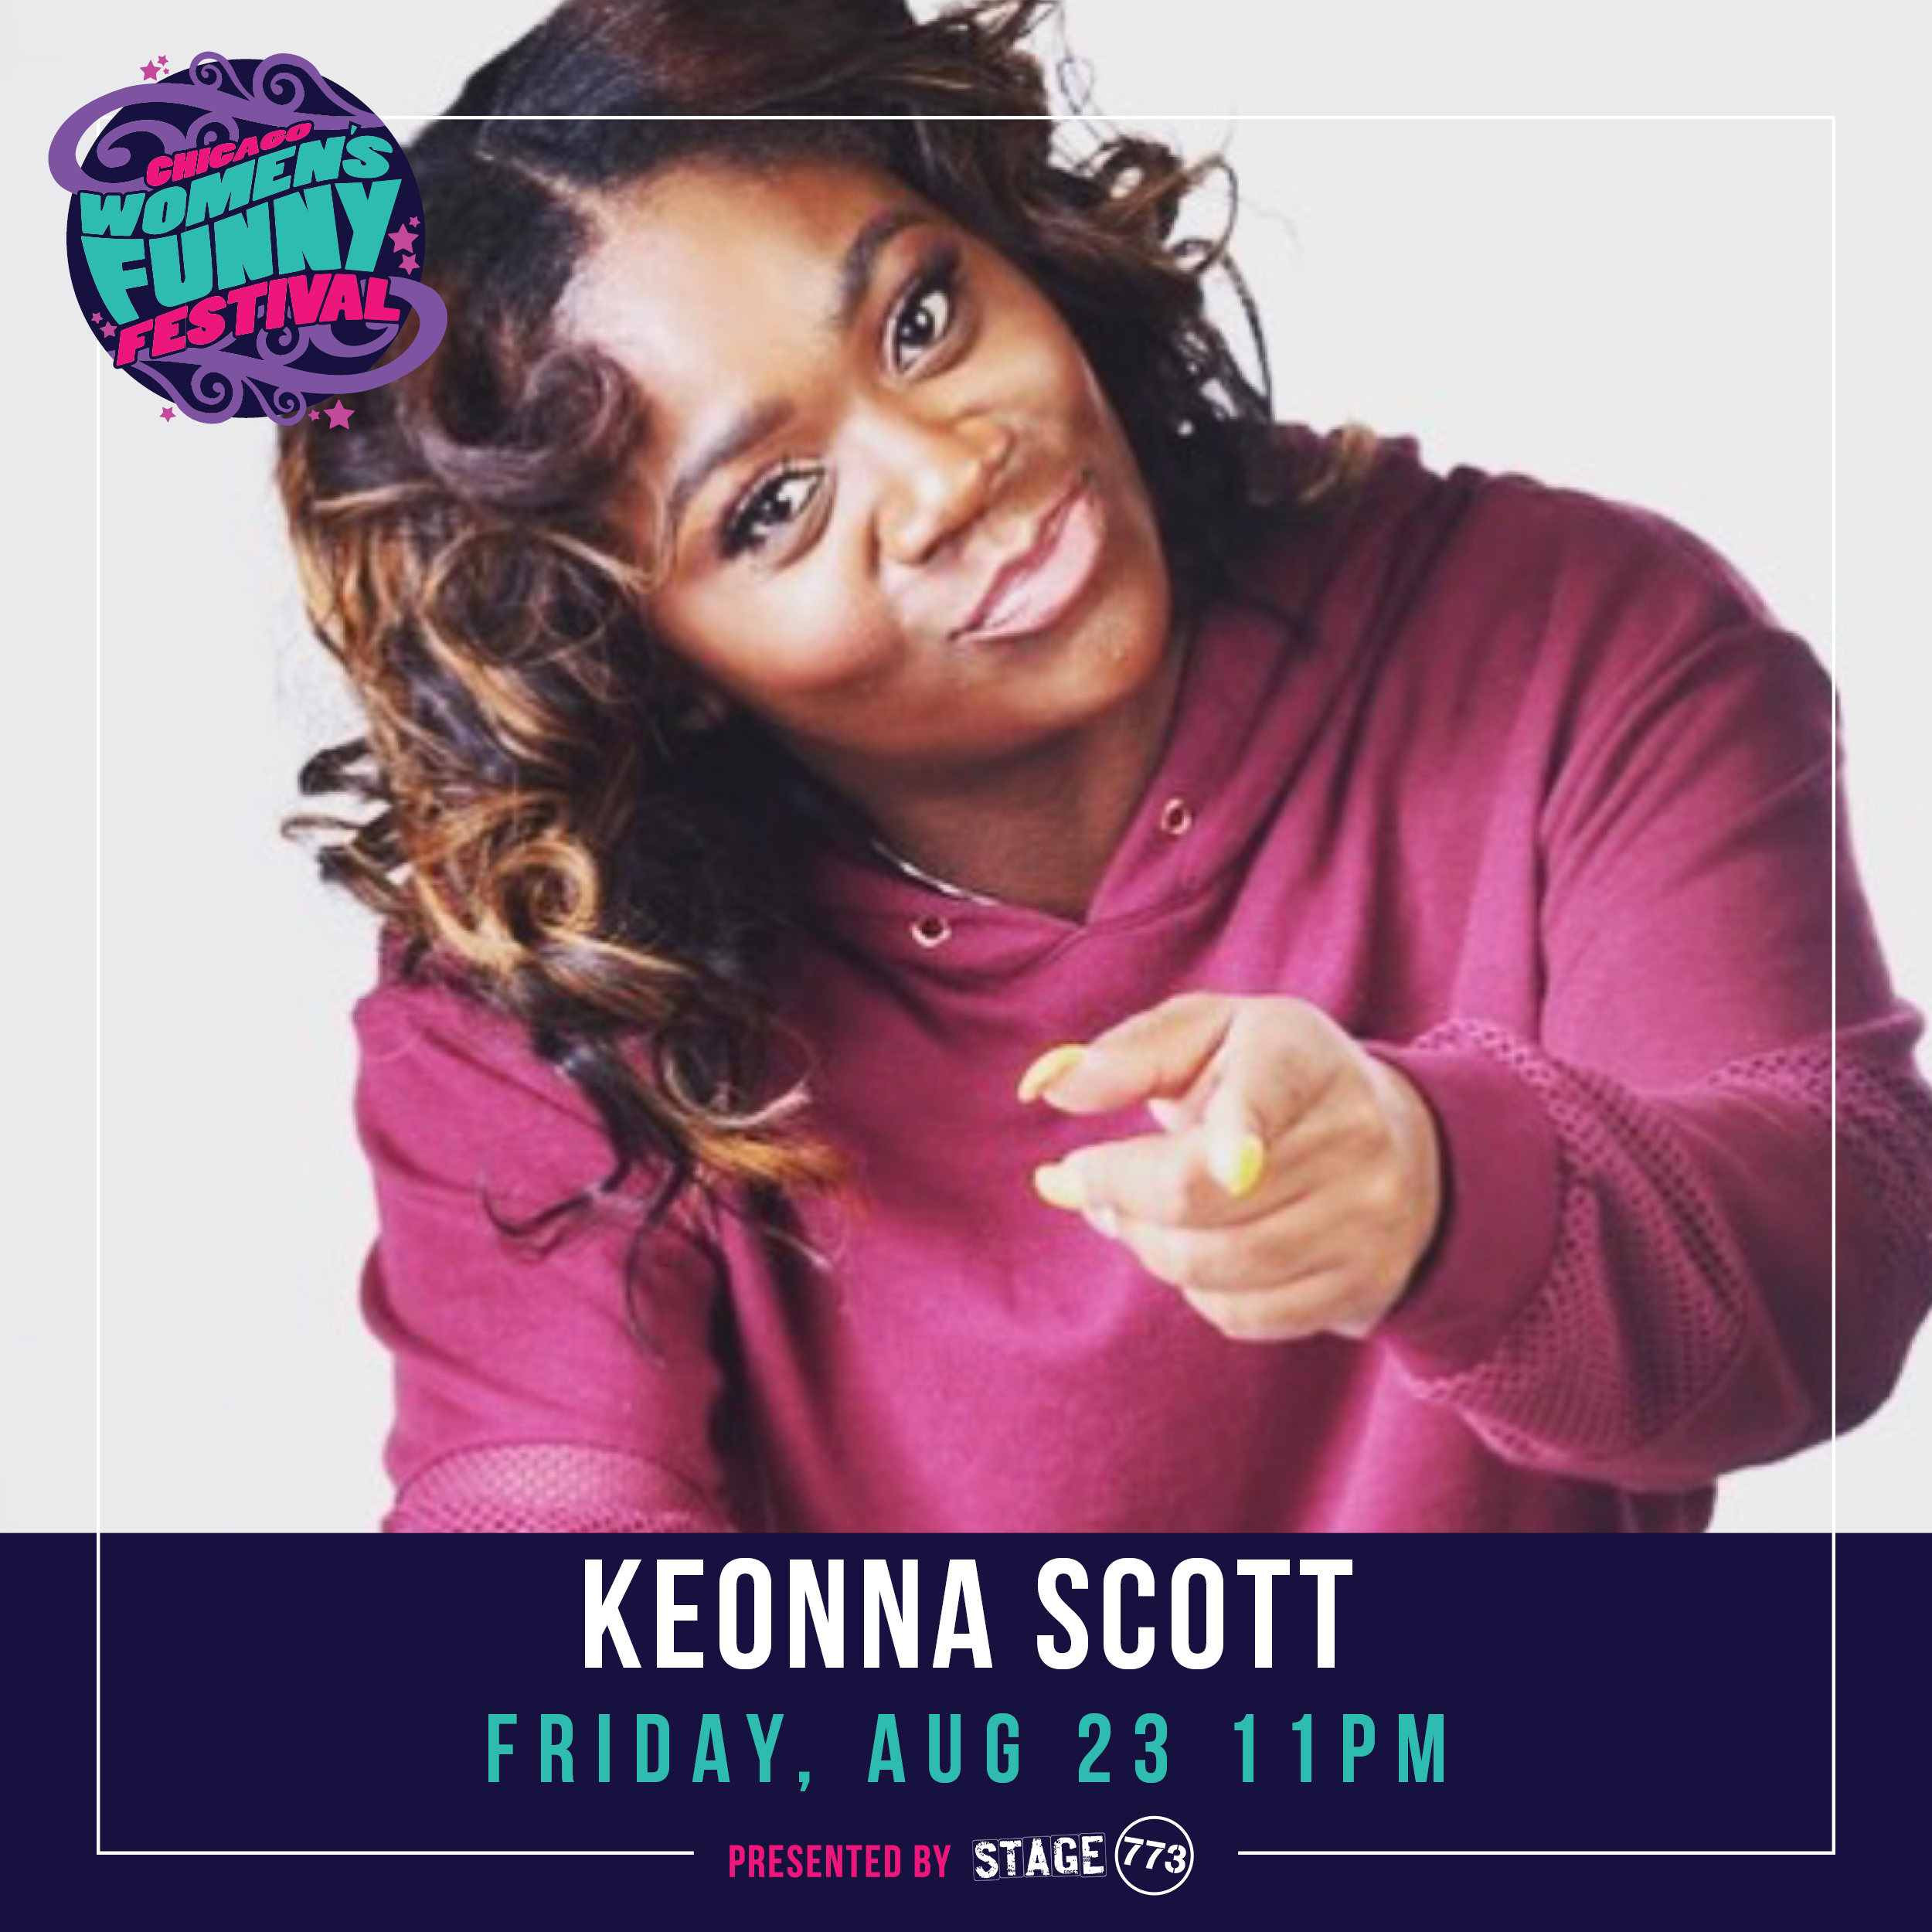 KeonnaScott_Friday_11PM_CWFF20193.jpg